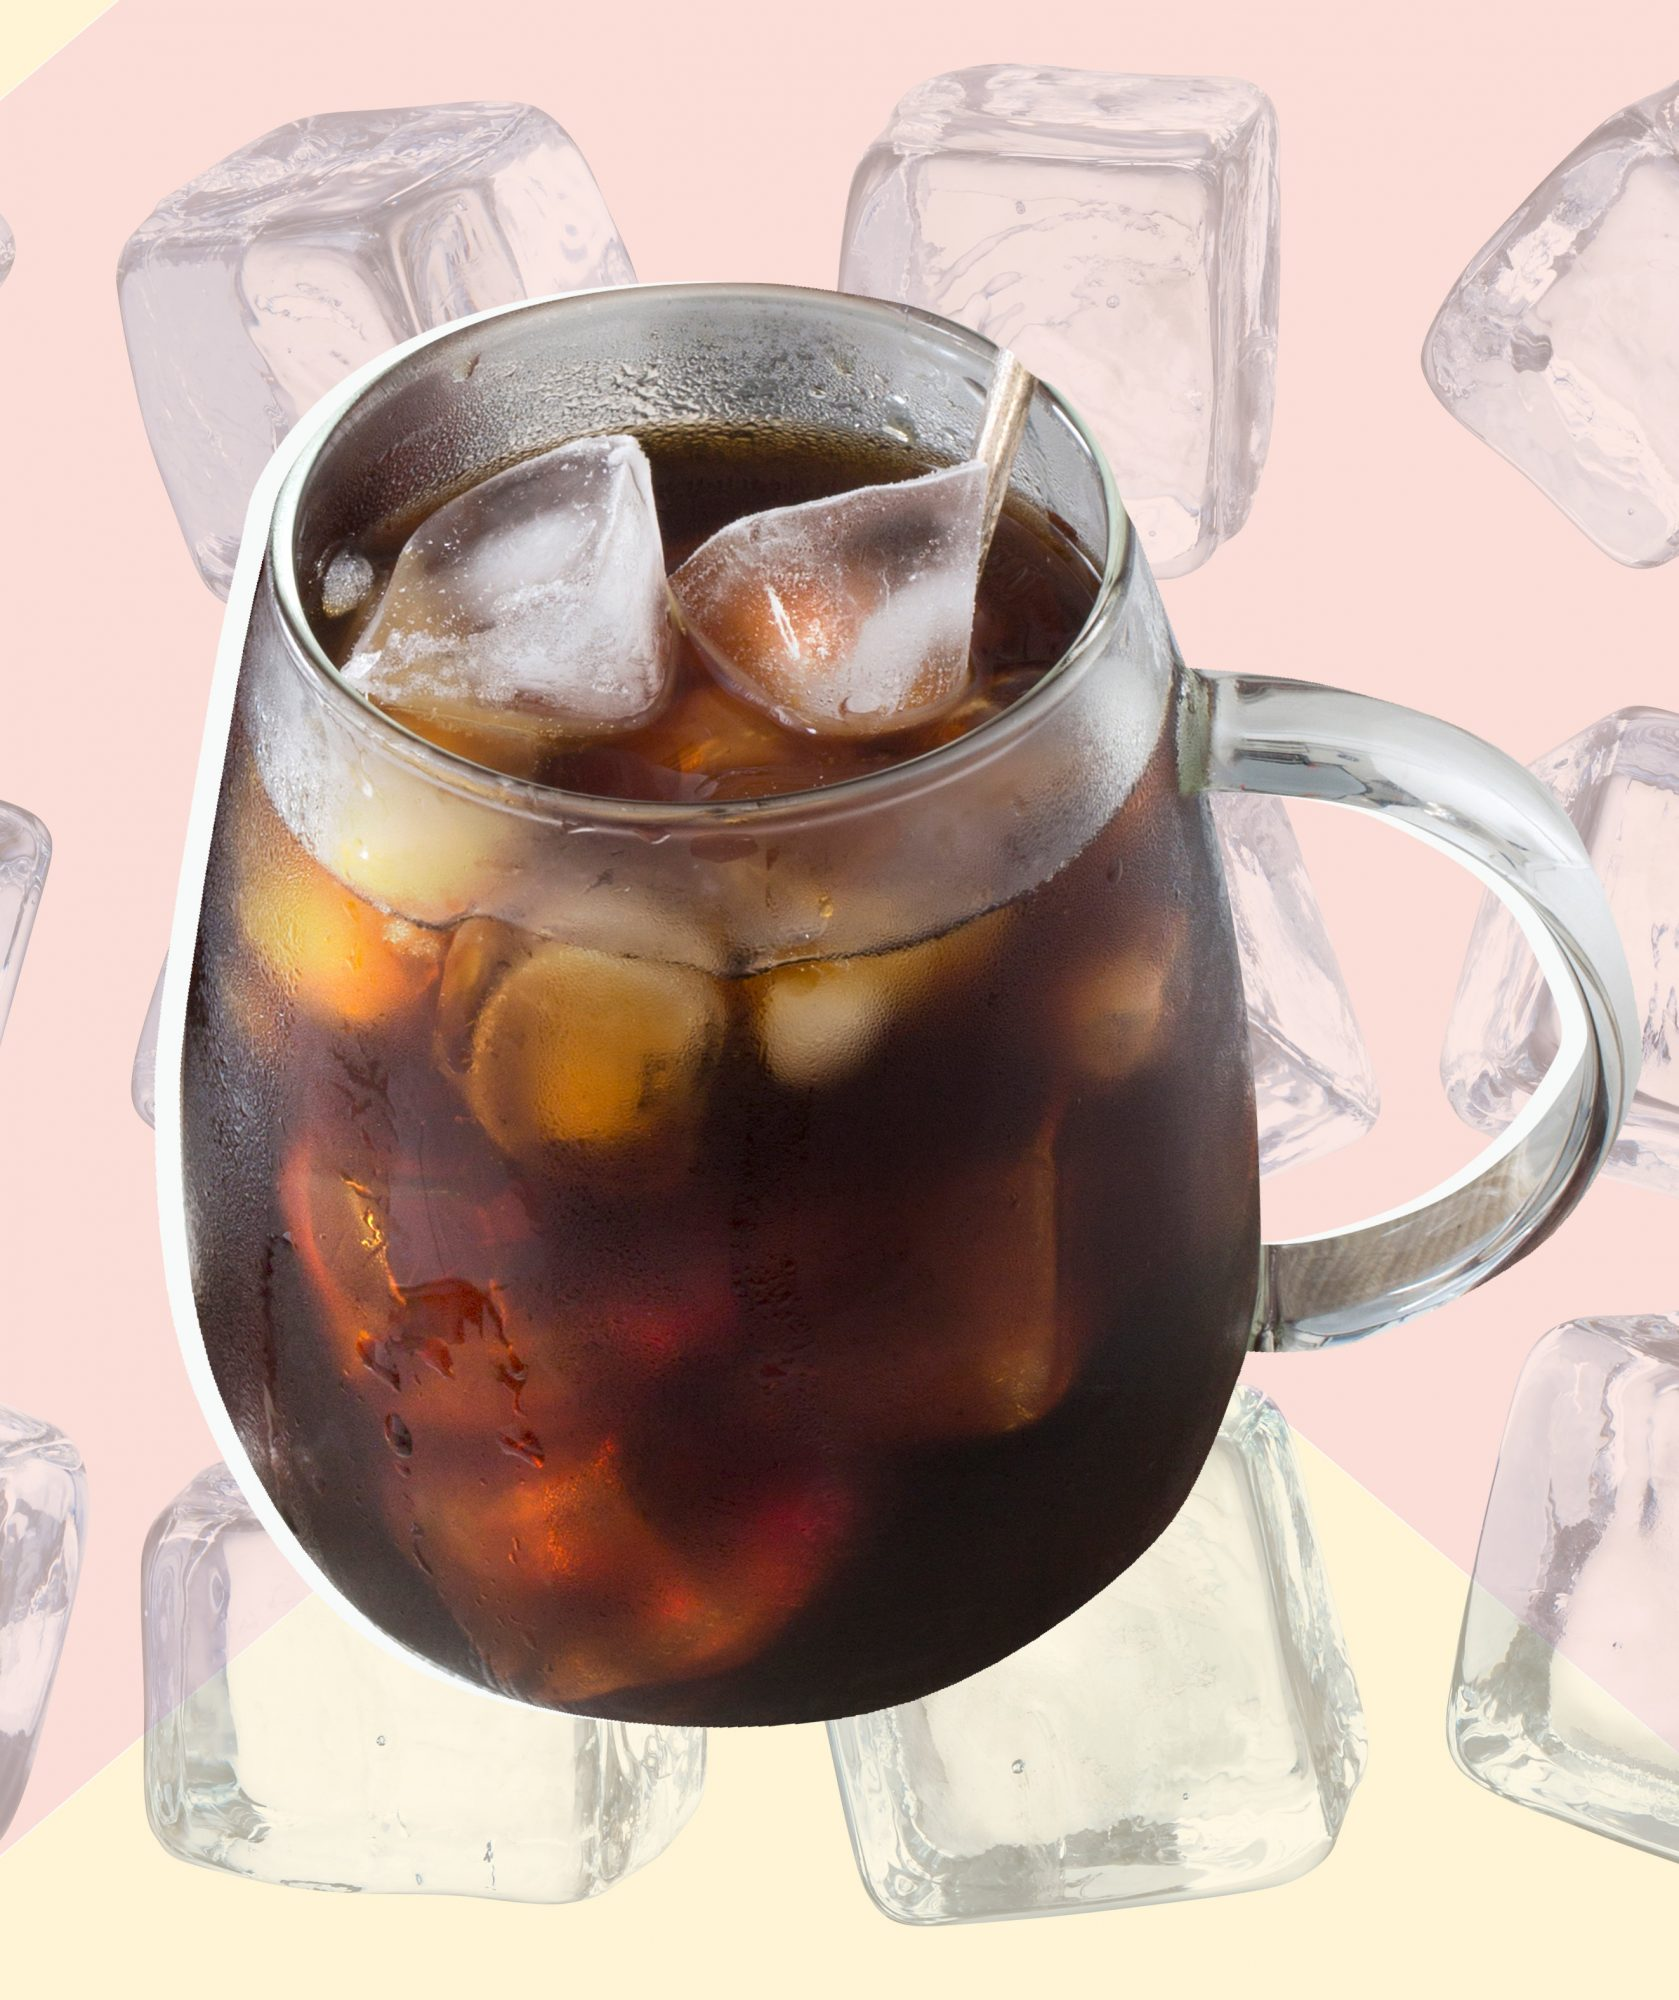 I Tried Making Cold Brew Coffee 3 Ways—and the Most Delicious Way Was a Snap